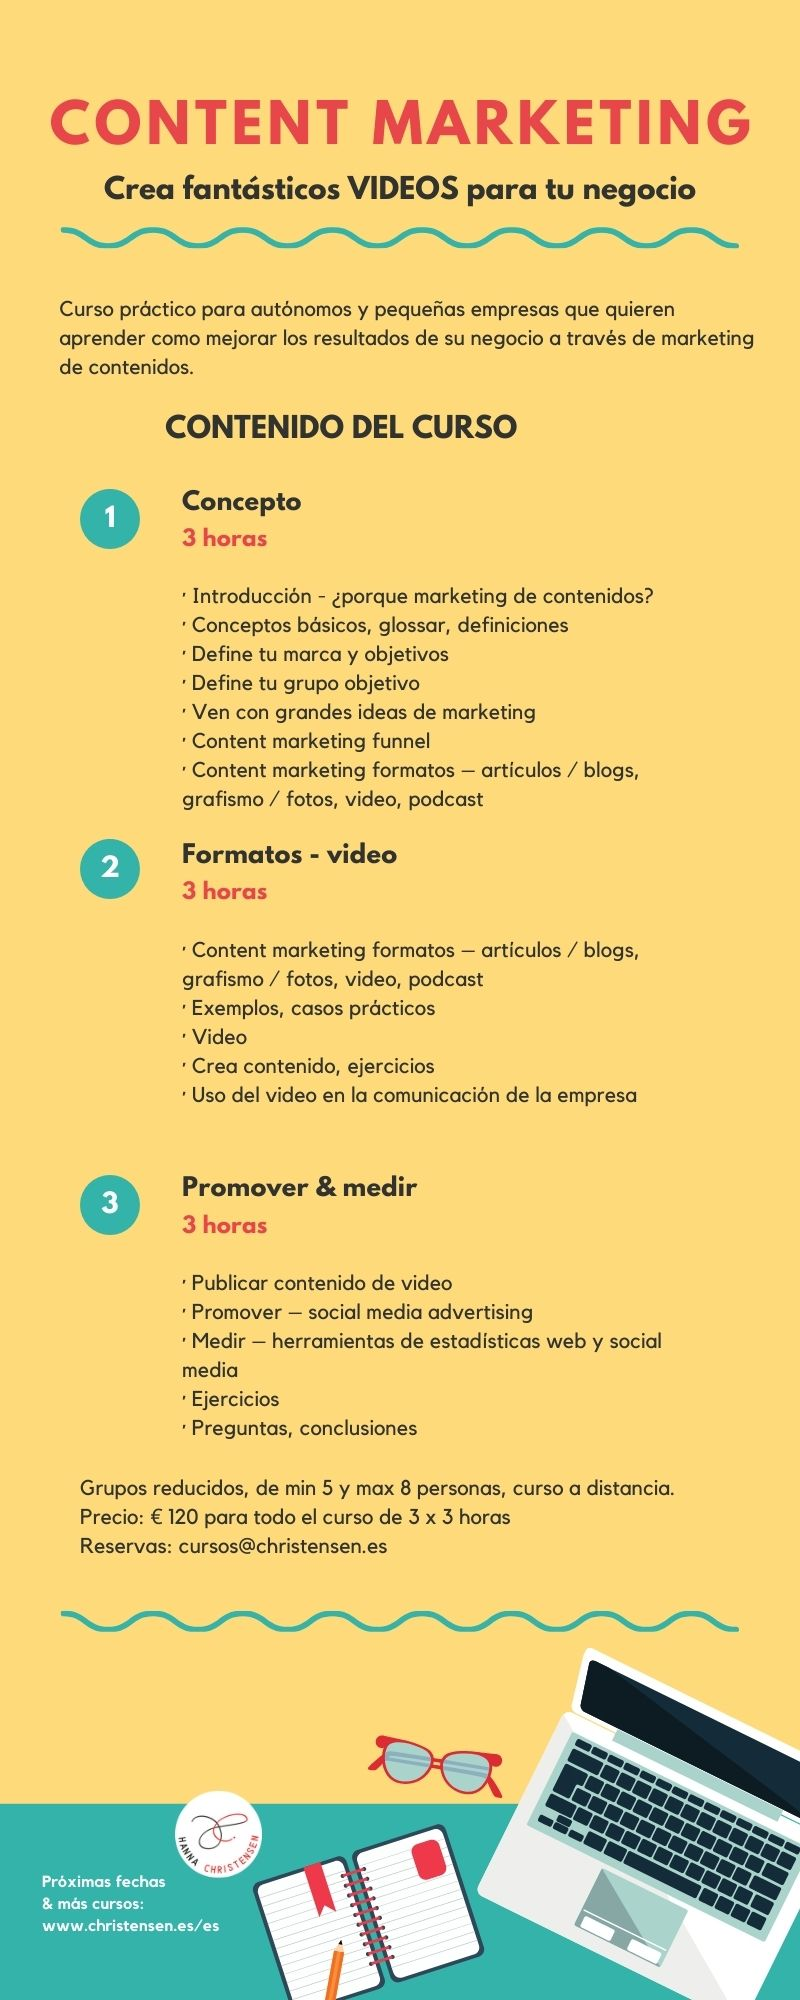 course: content marketing video